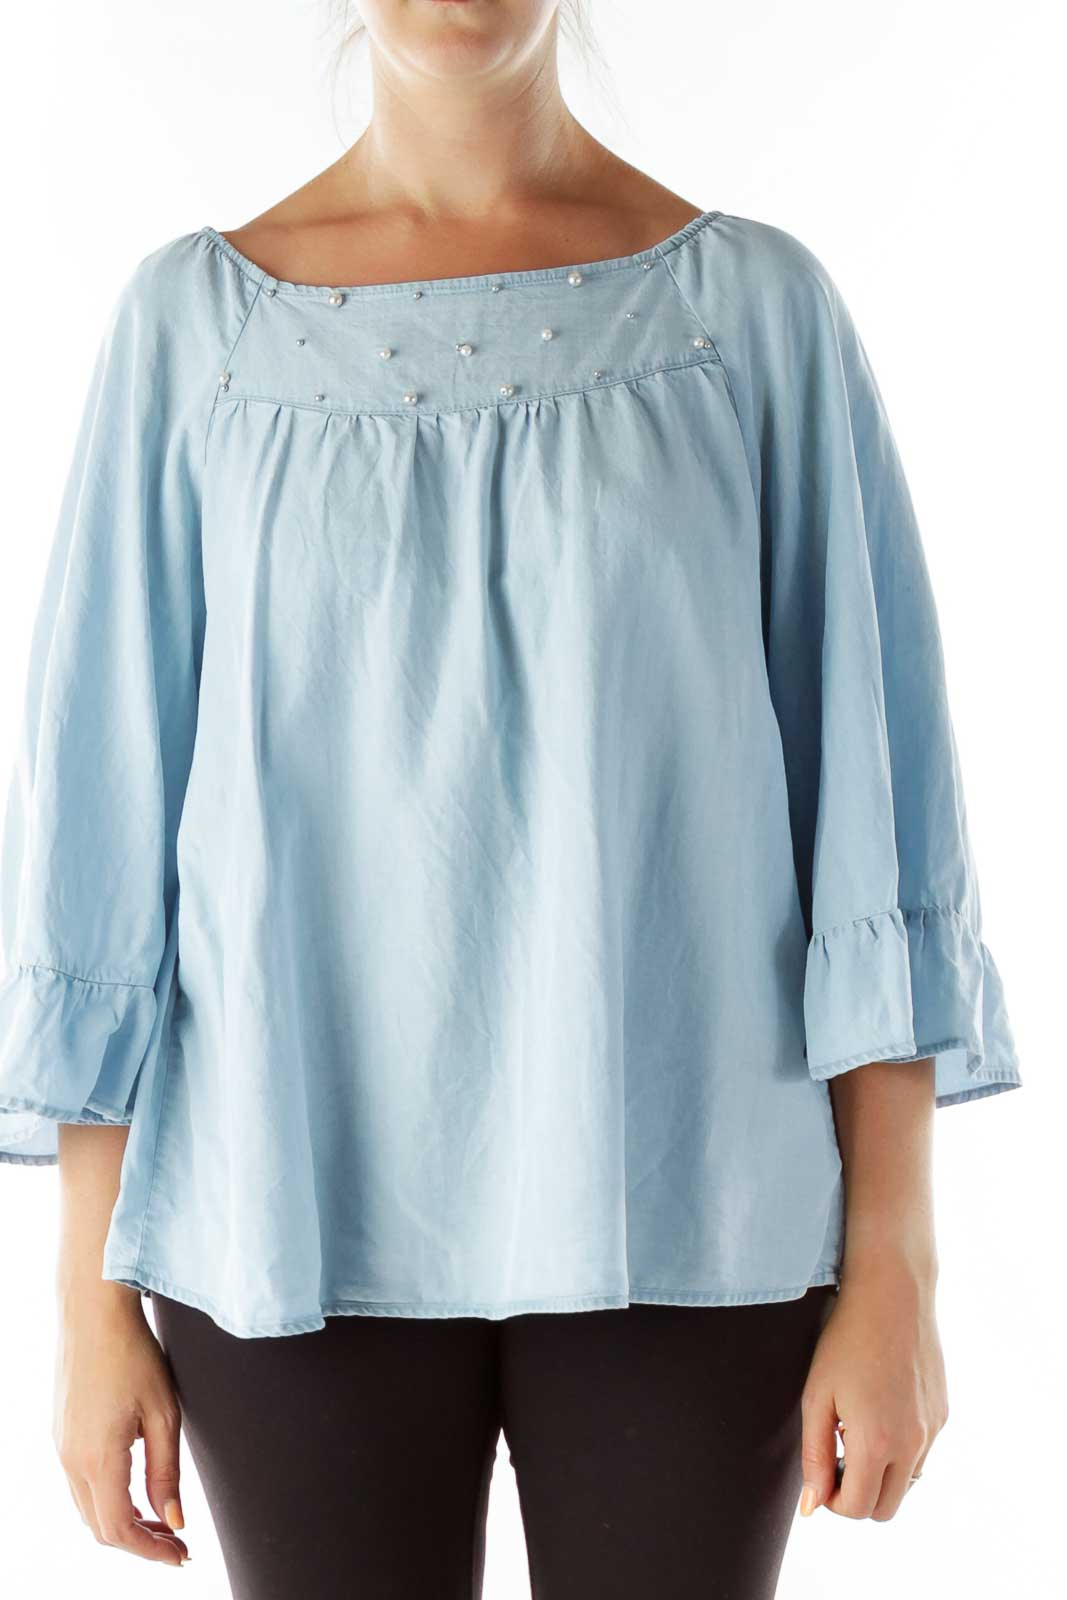 Blue Pearl Beaded Off-Shoulder Blouse Front